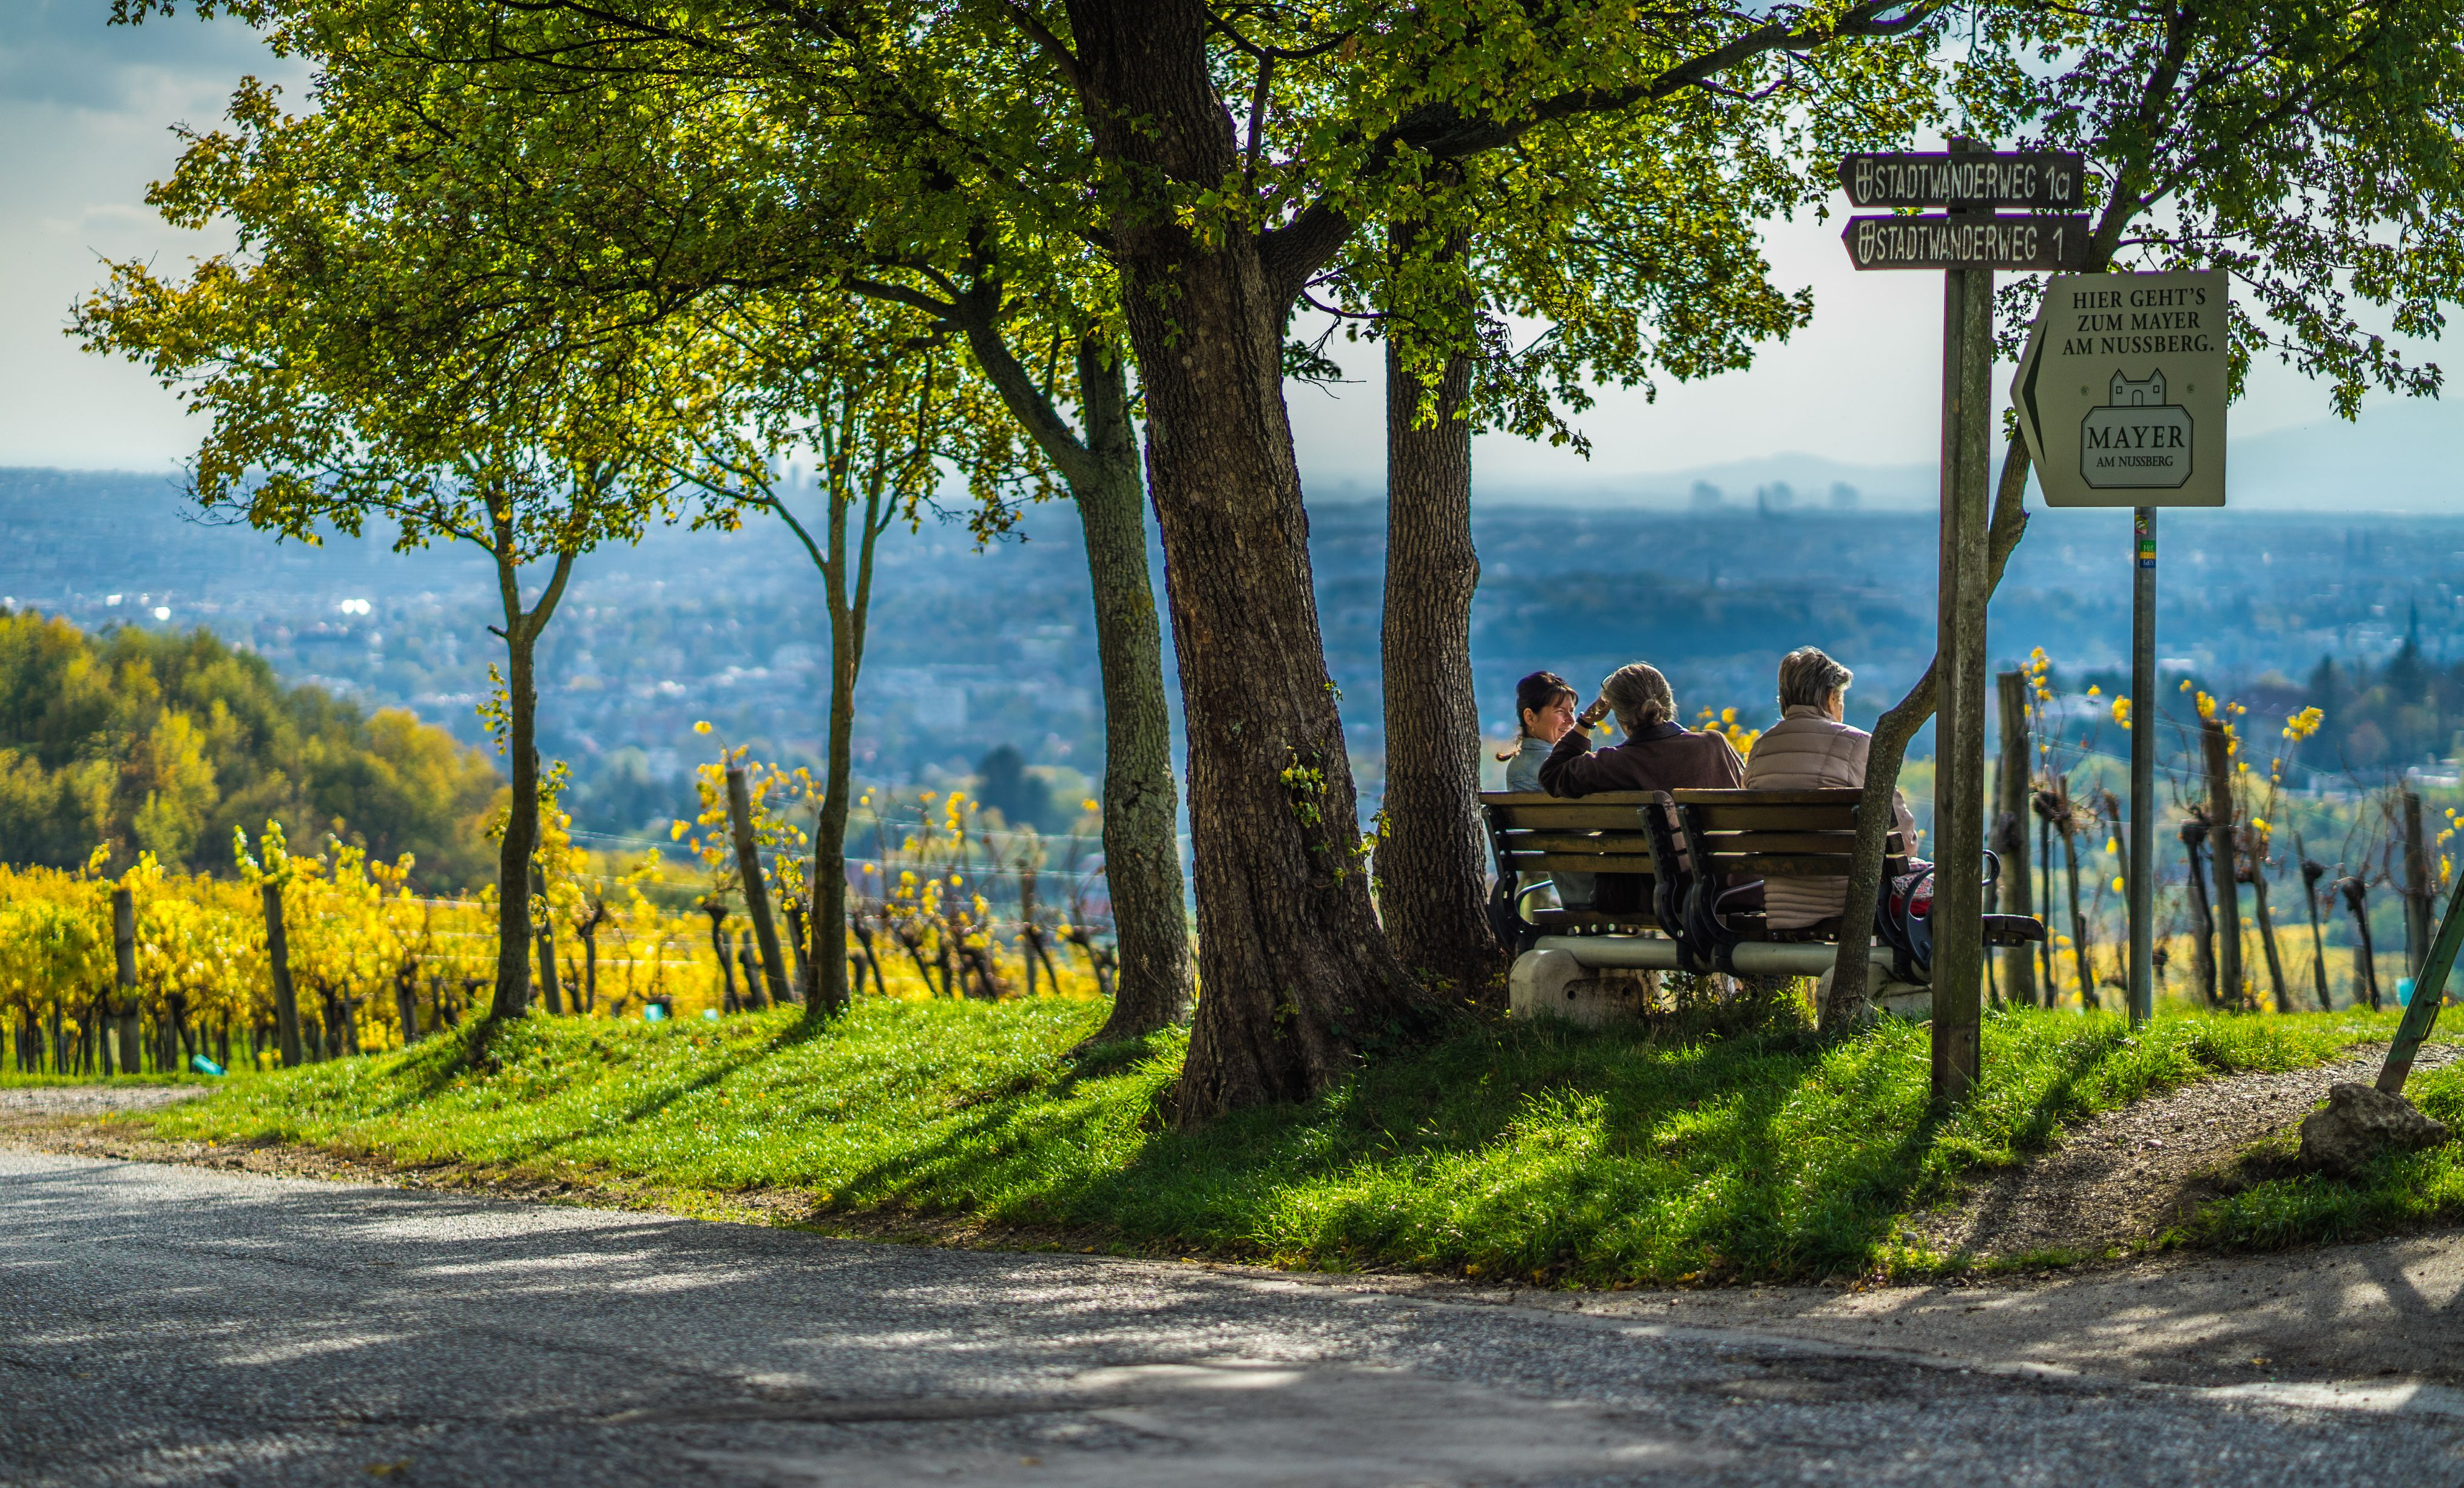 Three women in Vienna's wine country overlooking the city